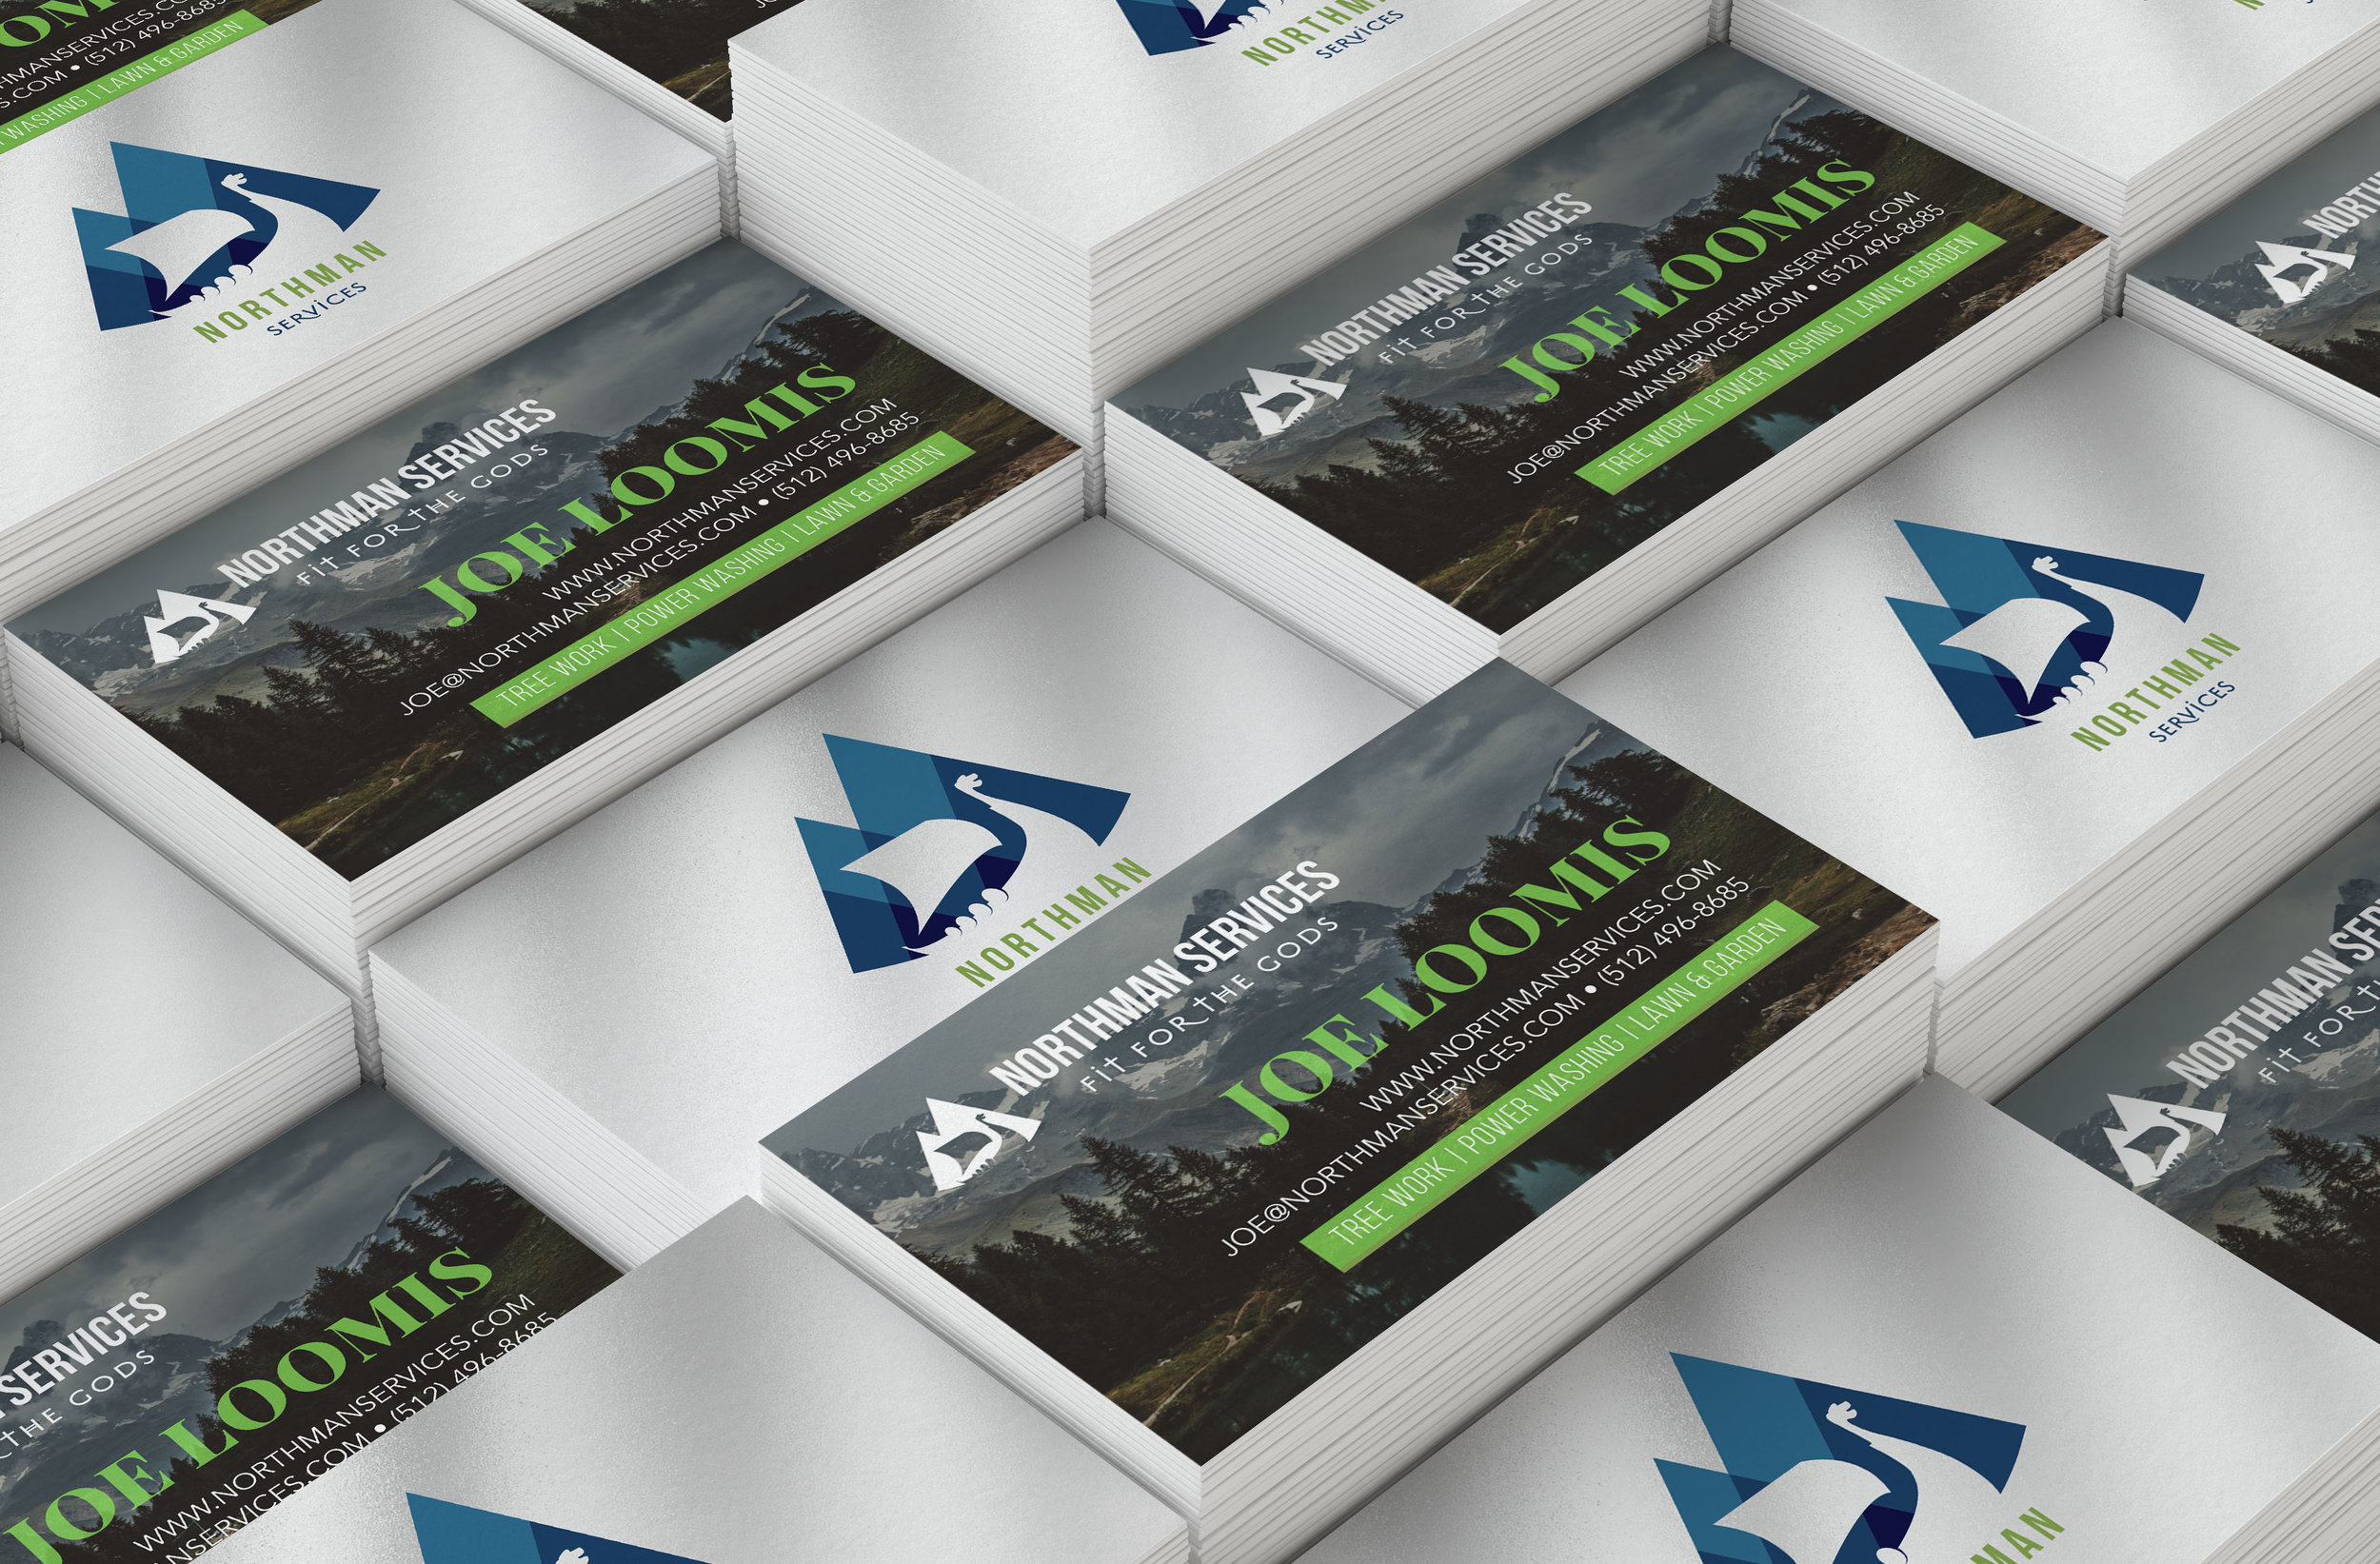 Business_Cards_Mockup_by_Bulbfish_03.jpg